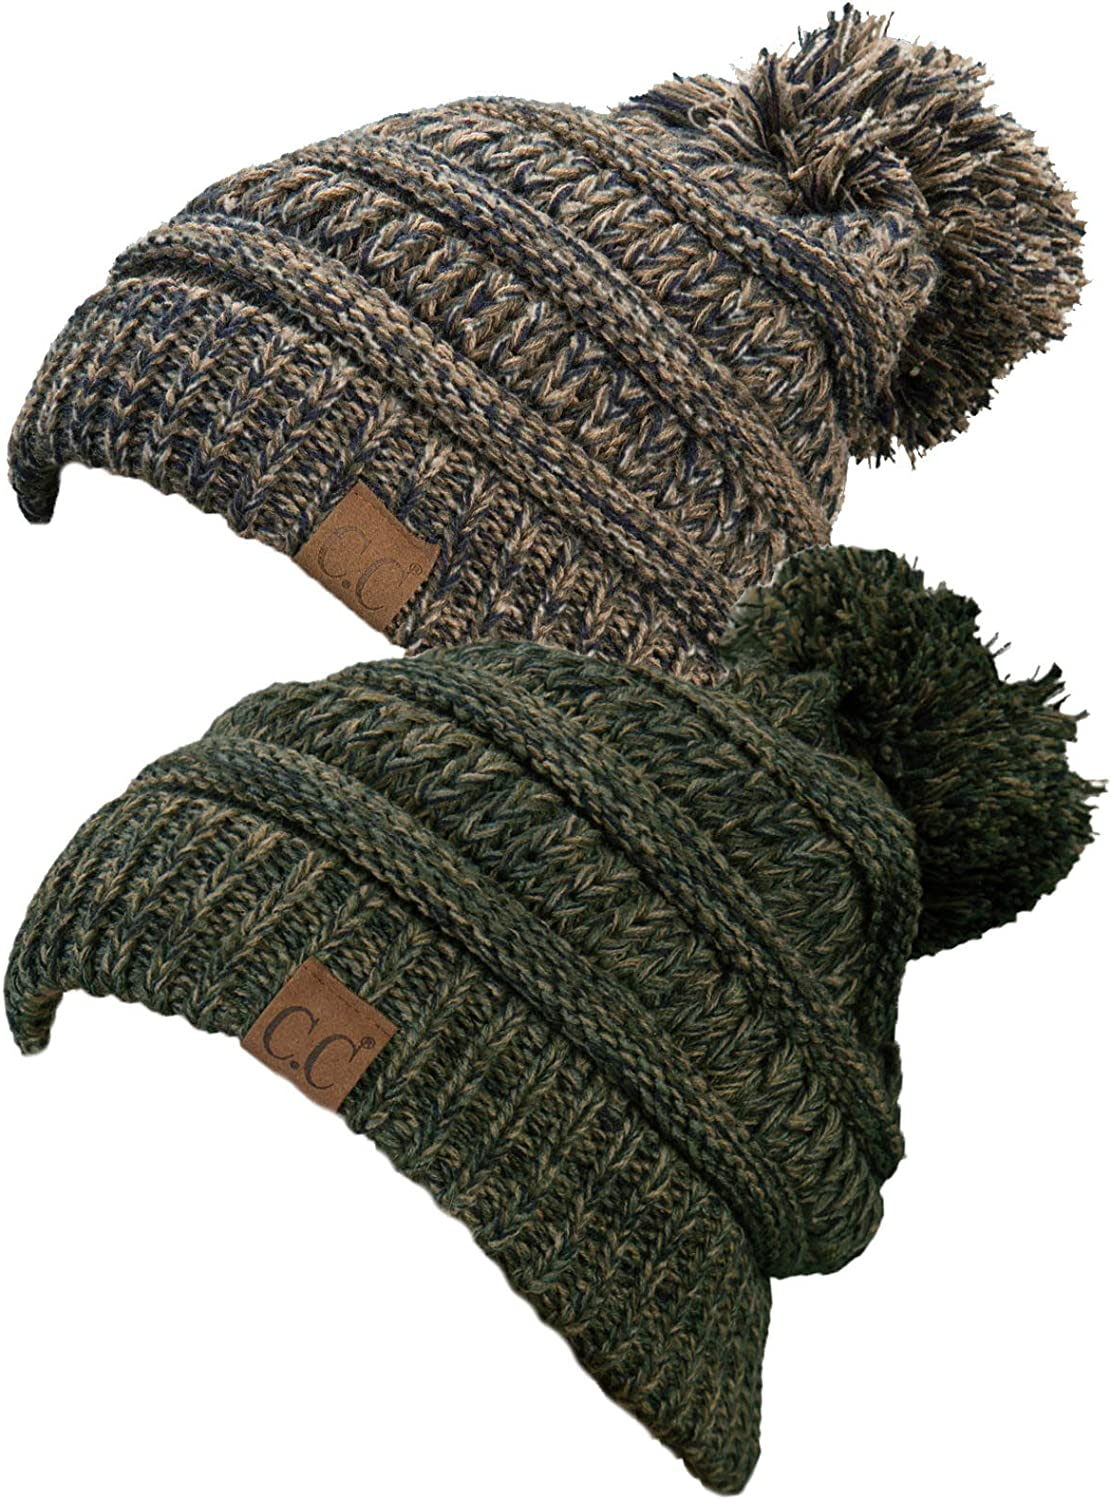 Funky Junque C.C. Pompom Slouchy Cable Knit Warm Soft Multicolord Pom Beanie Hat